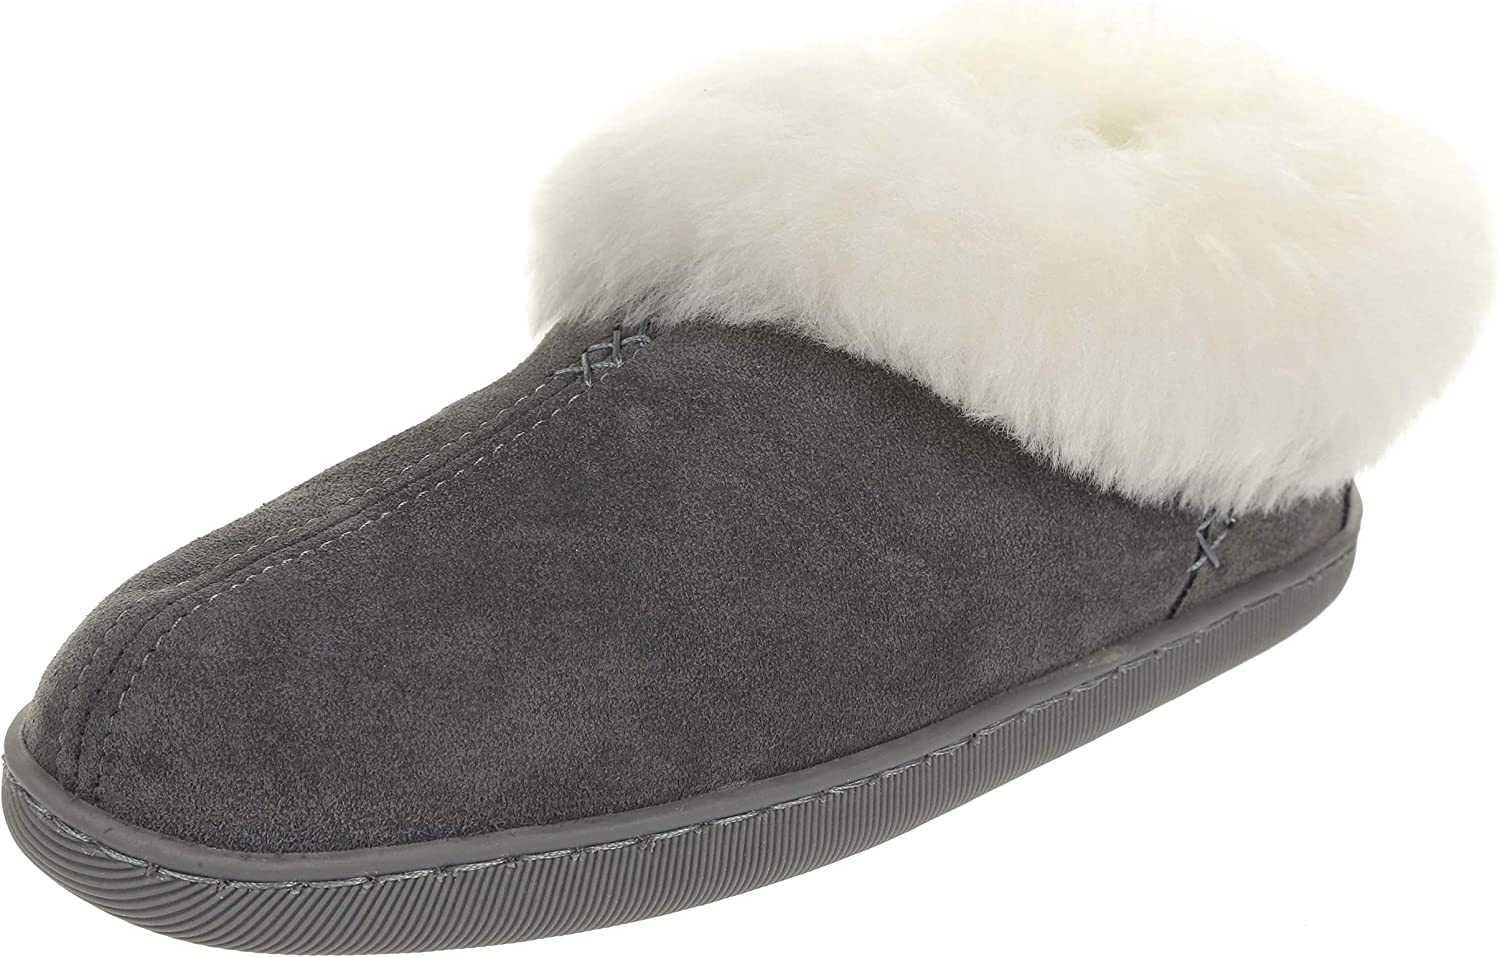 Vogar Womens Leather Furry Slippers VG-26 Sheep Wool Lined